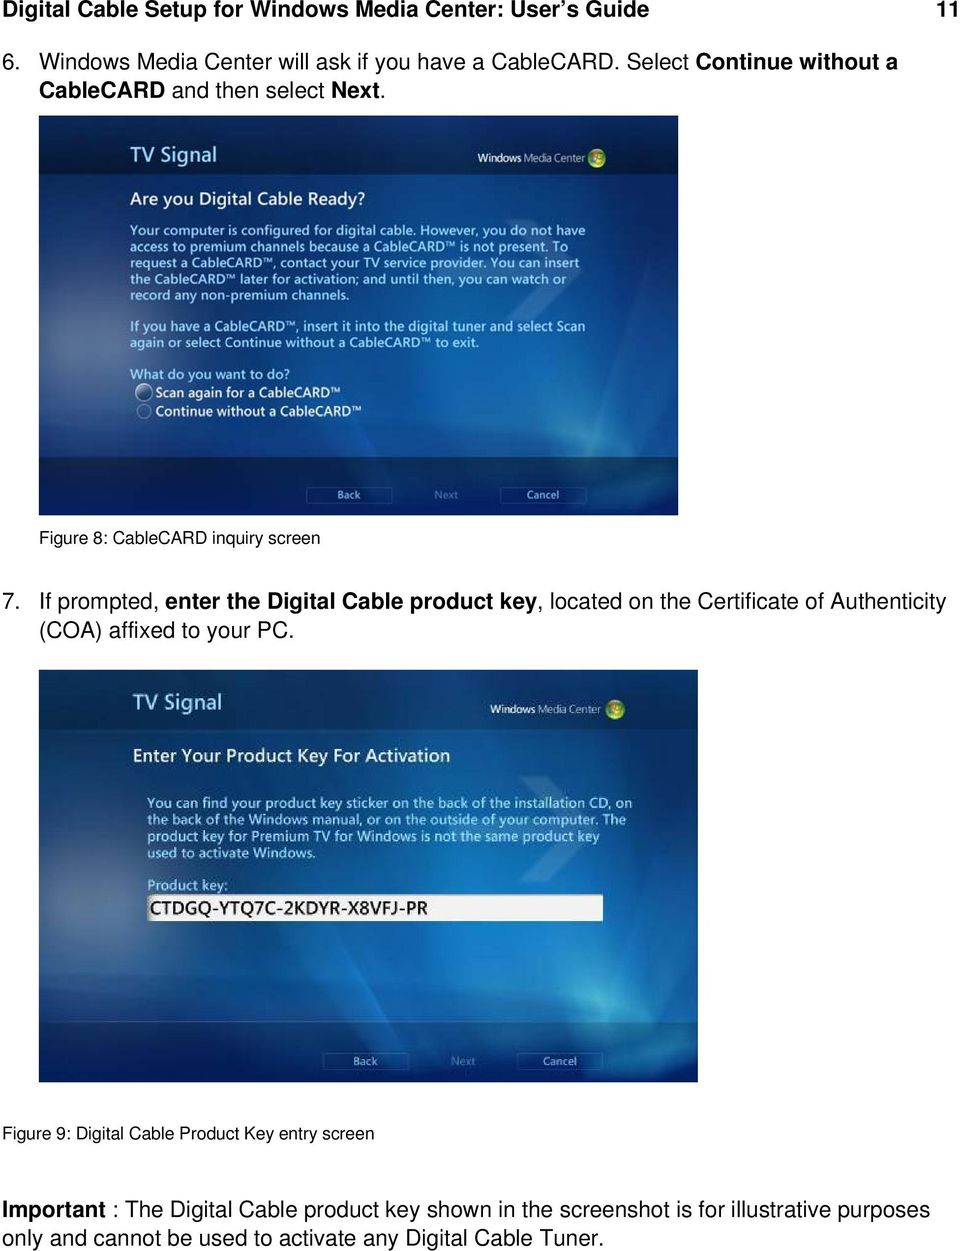 If prompted, enter the Digital Cable product key, located on the Certificate of Authenticity (COA) affixed to your PC.